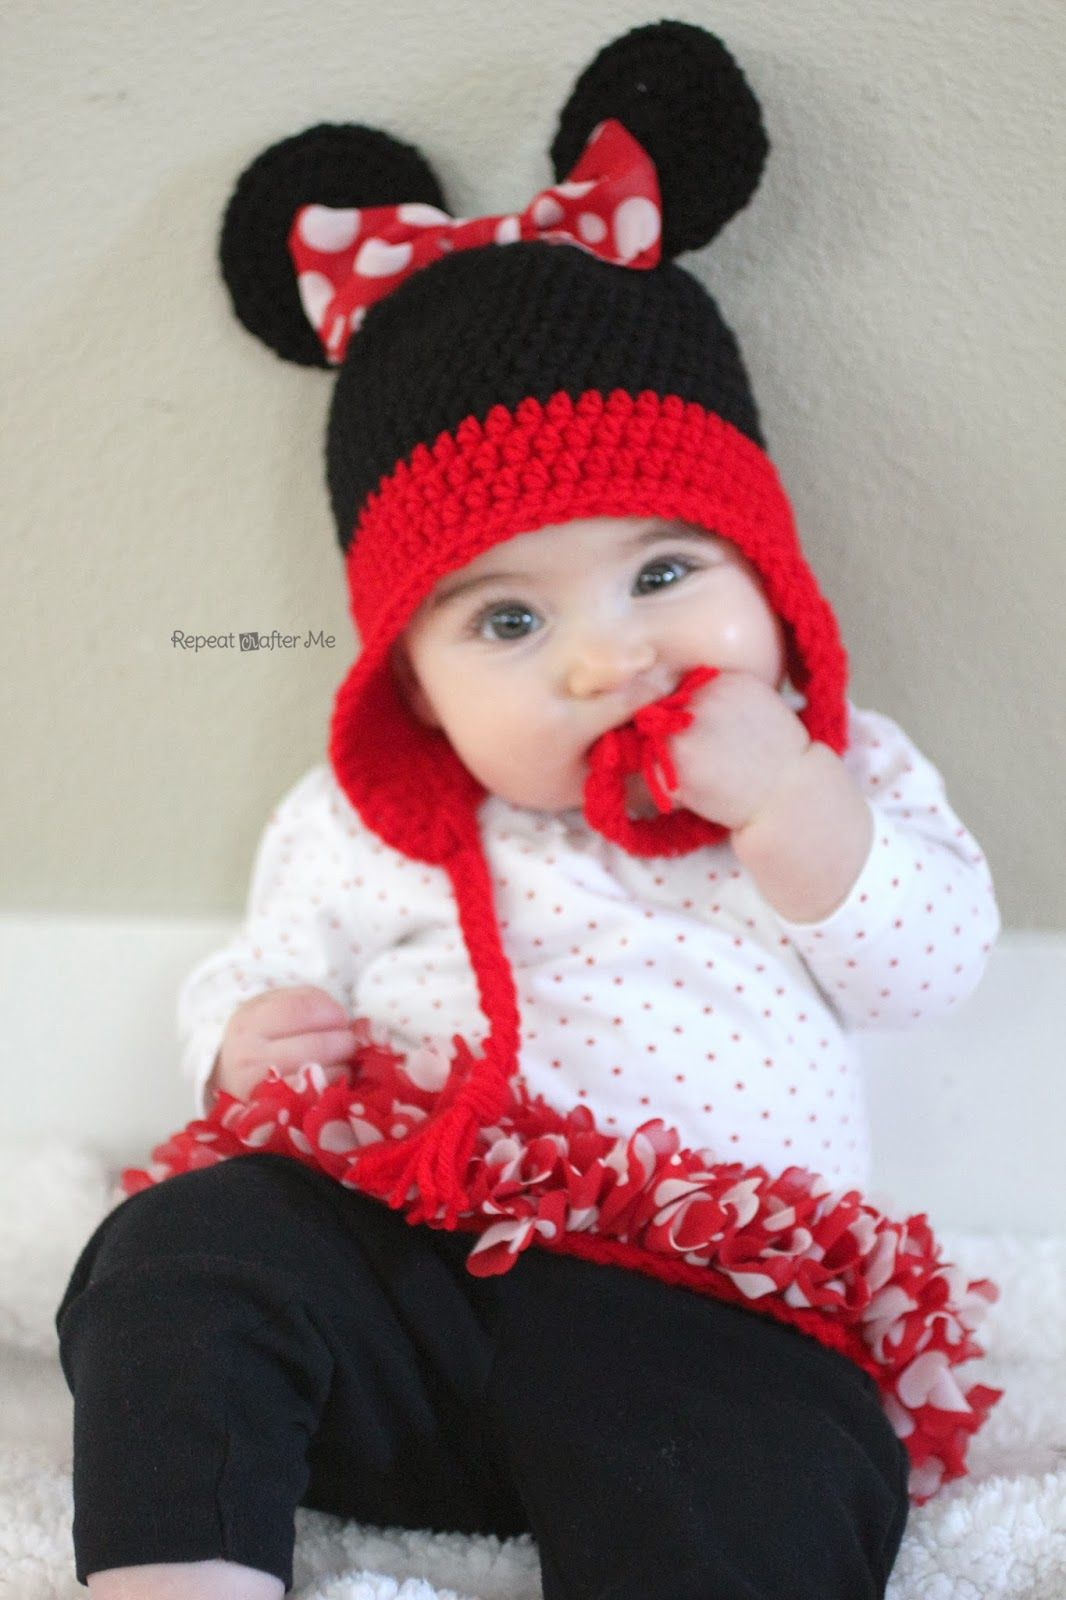 5670f3e9369 Repeat Crafter Me  Crochet Minnie Mouse Inspired Tutu with Red Heart  Boutique Sassy Fabric Yarn